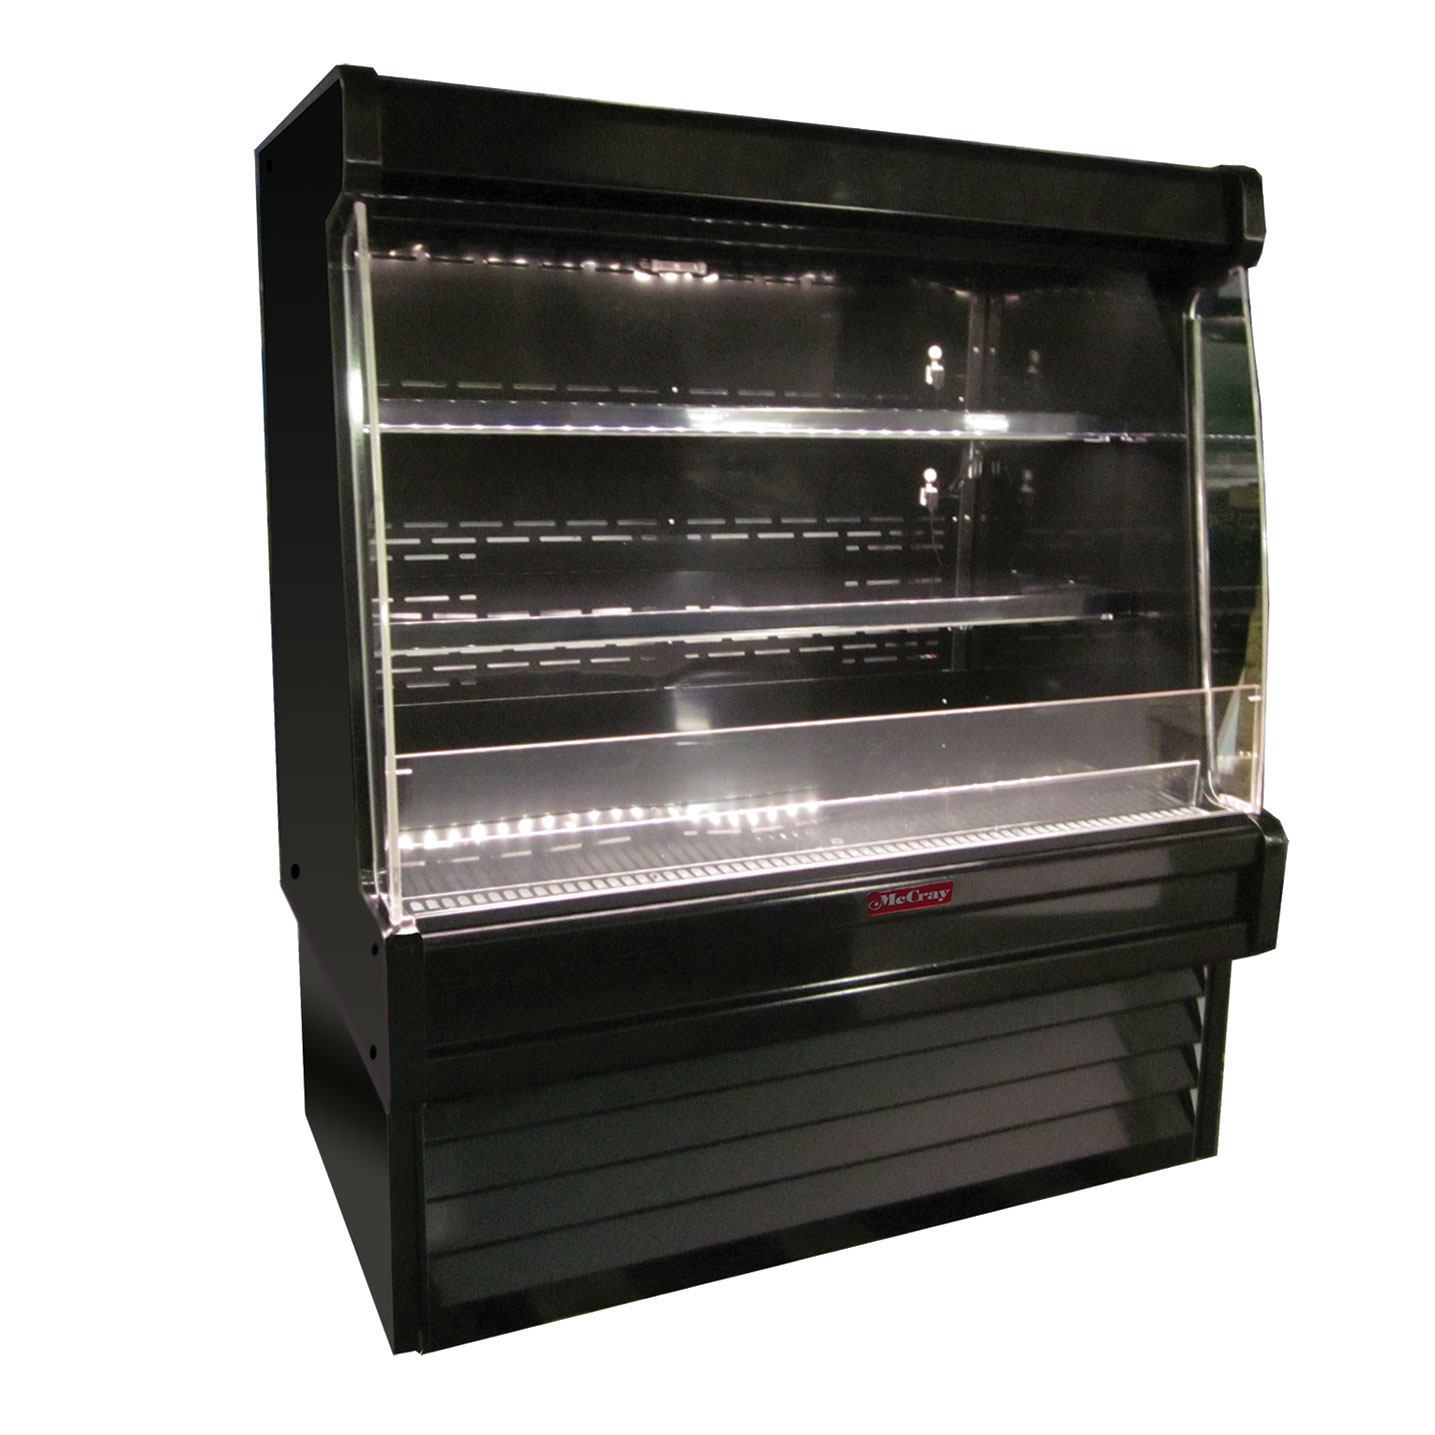 Howard-McCray SC-OP35E-6L-LED display case, produce